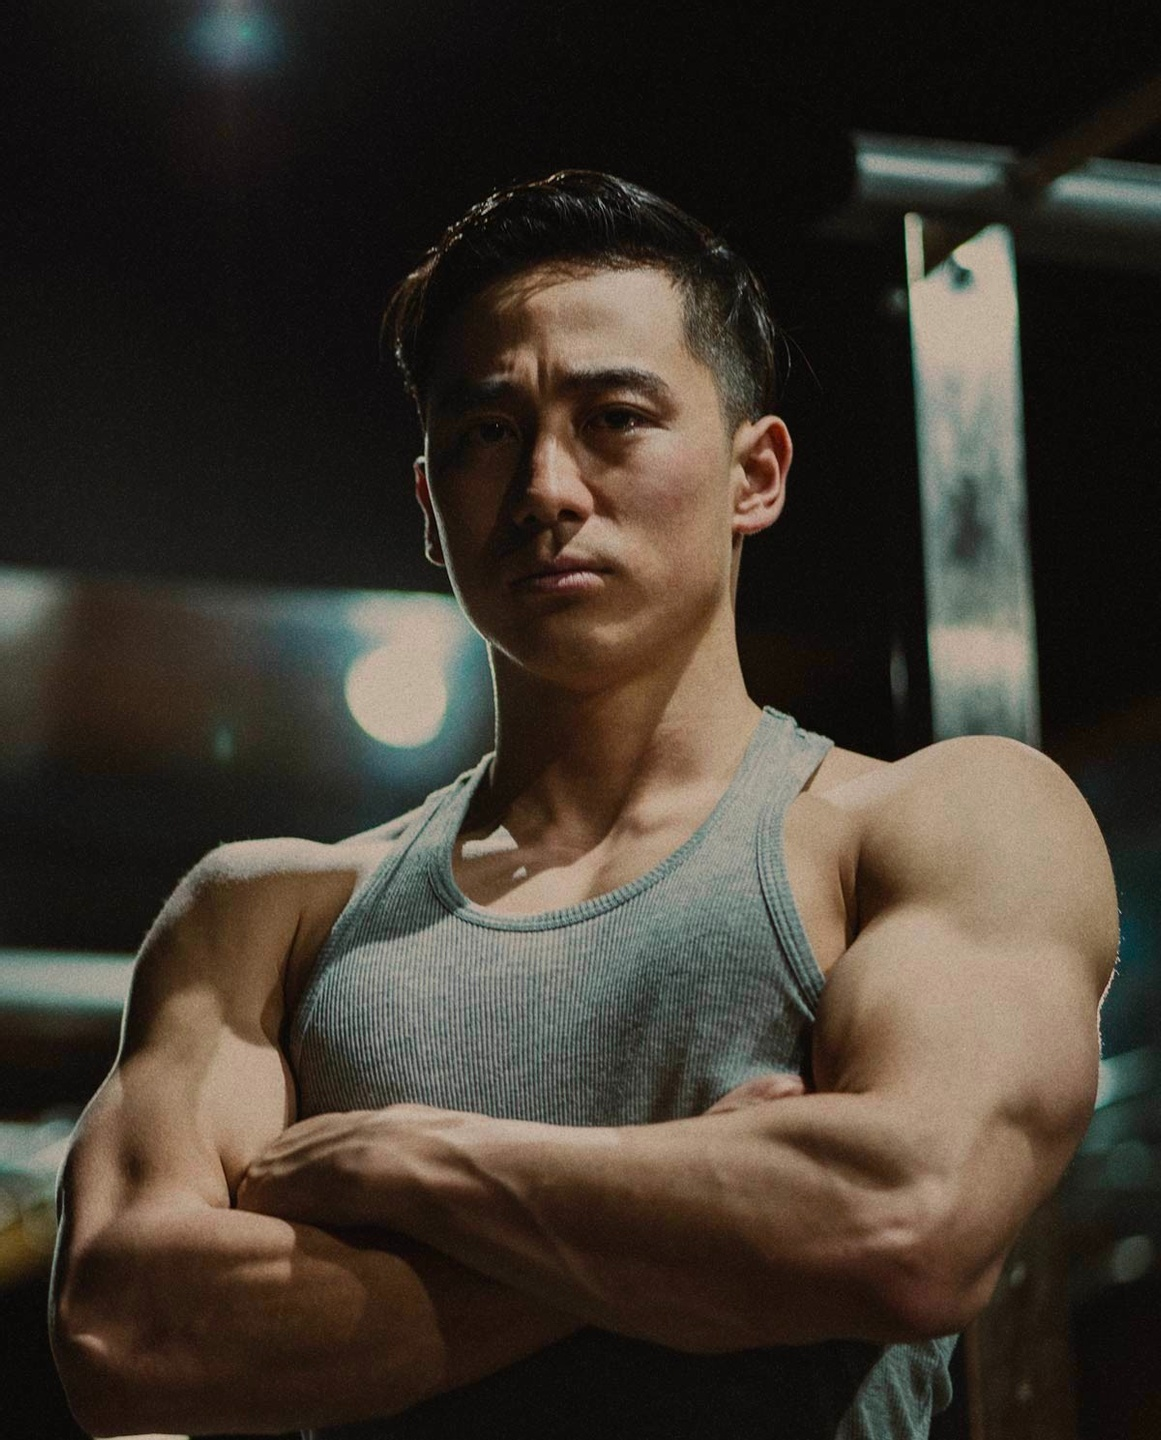 Muscular man at the gym